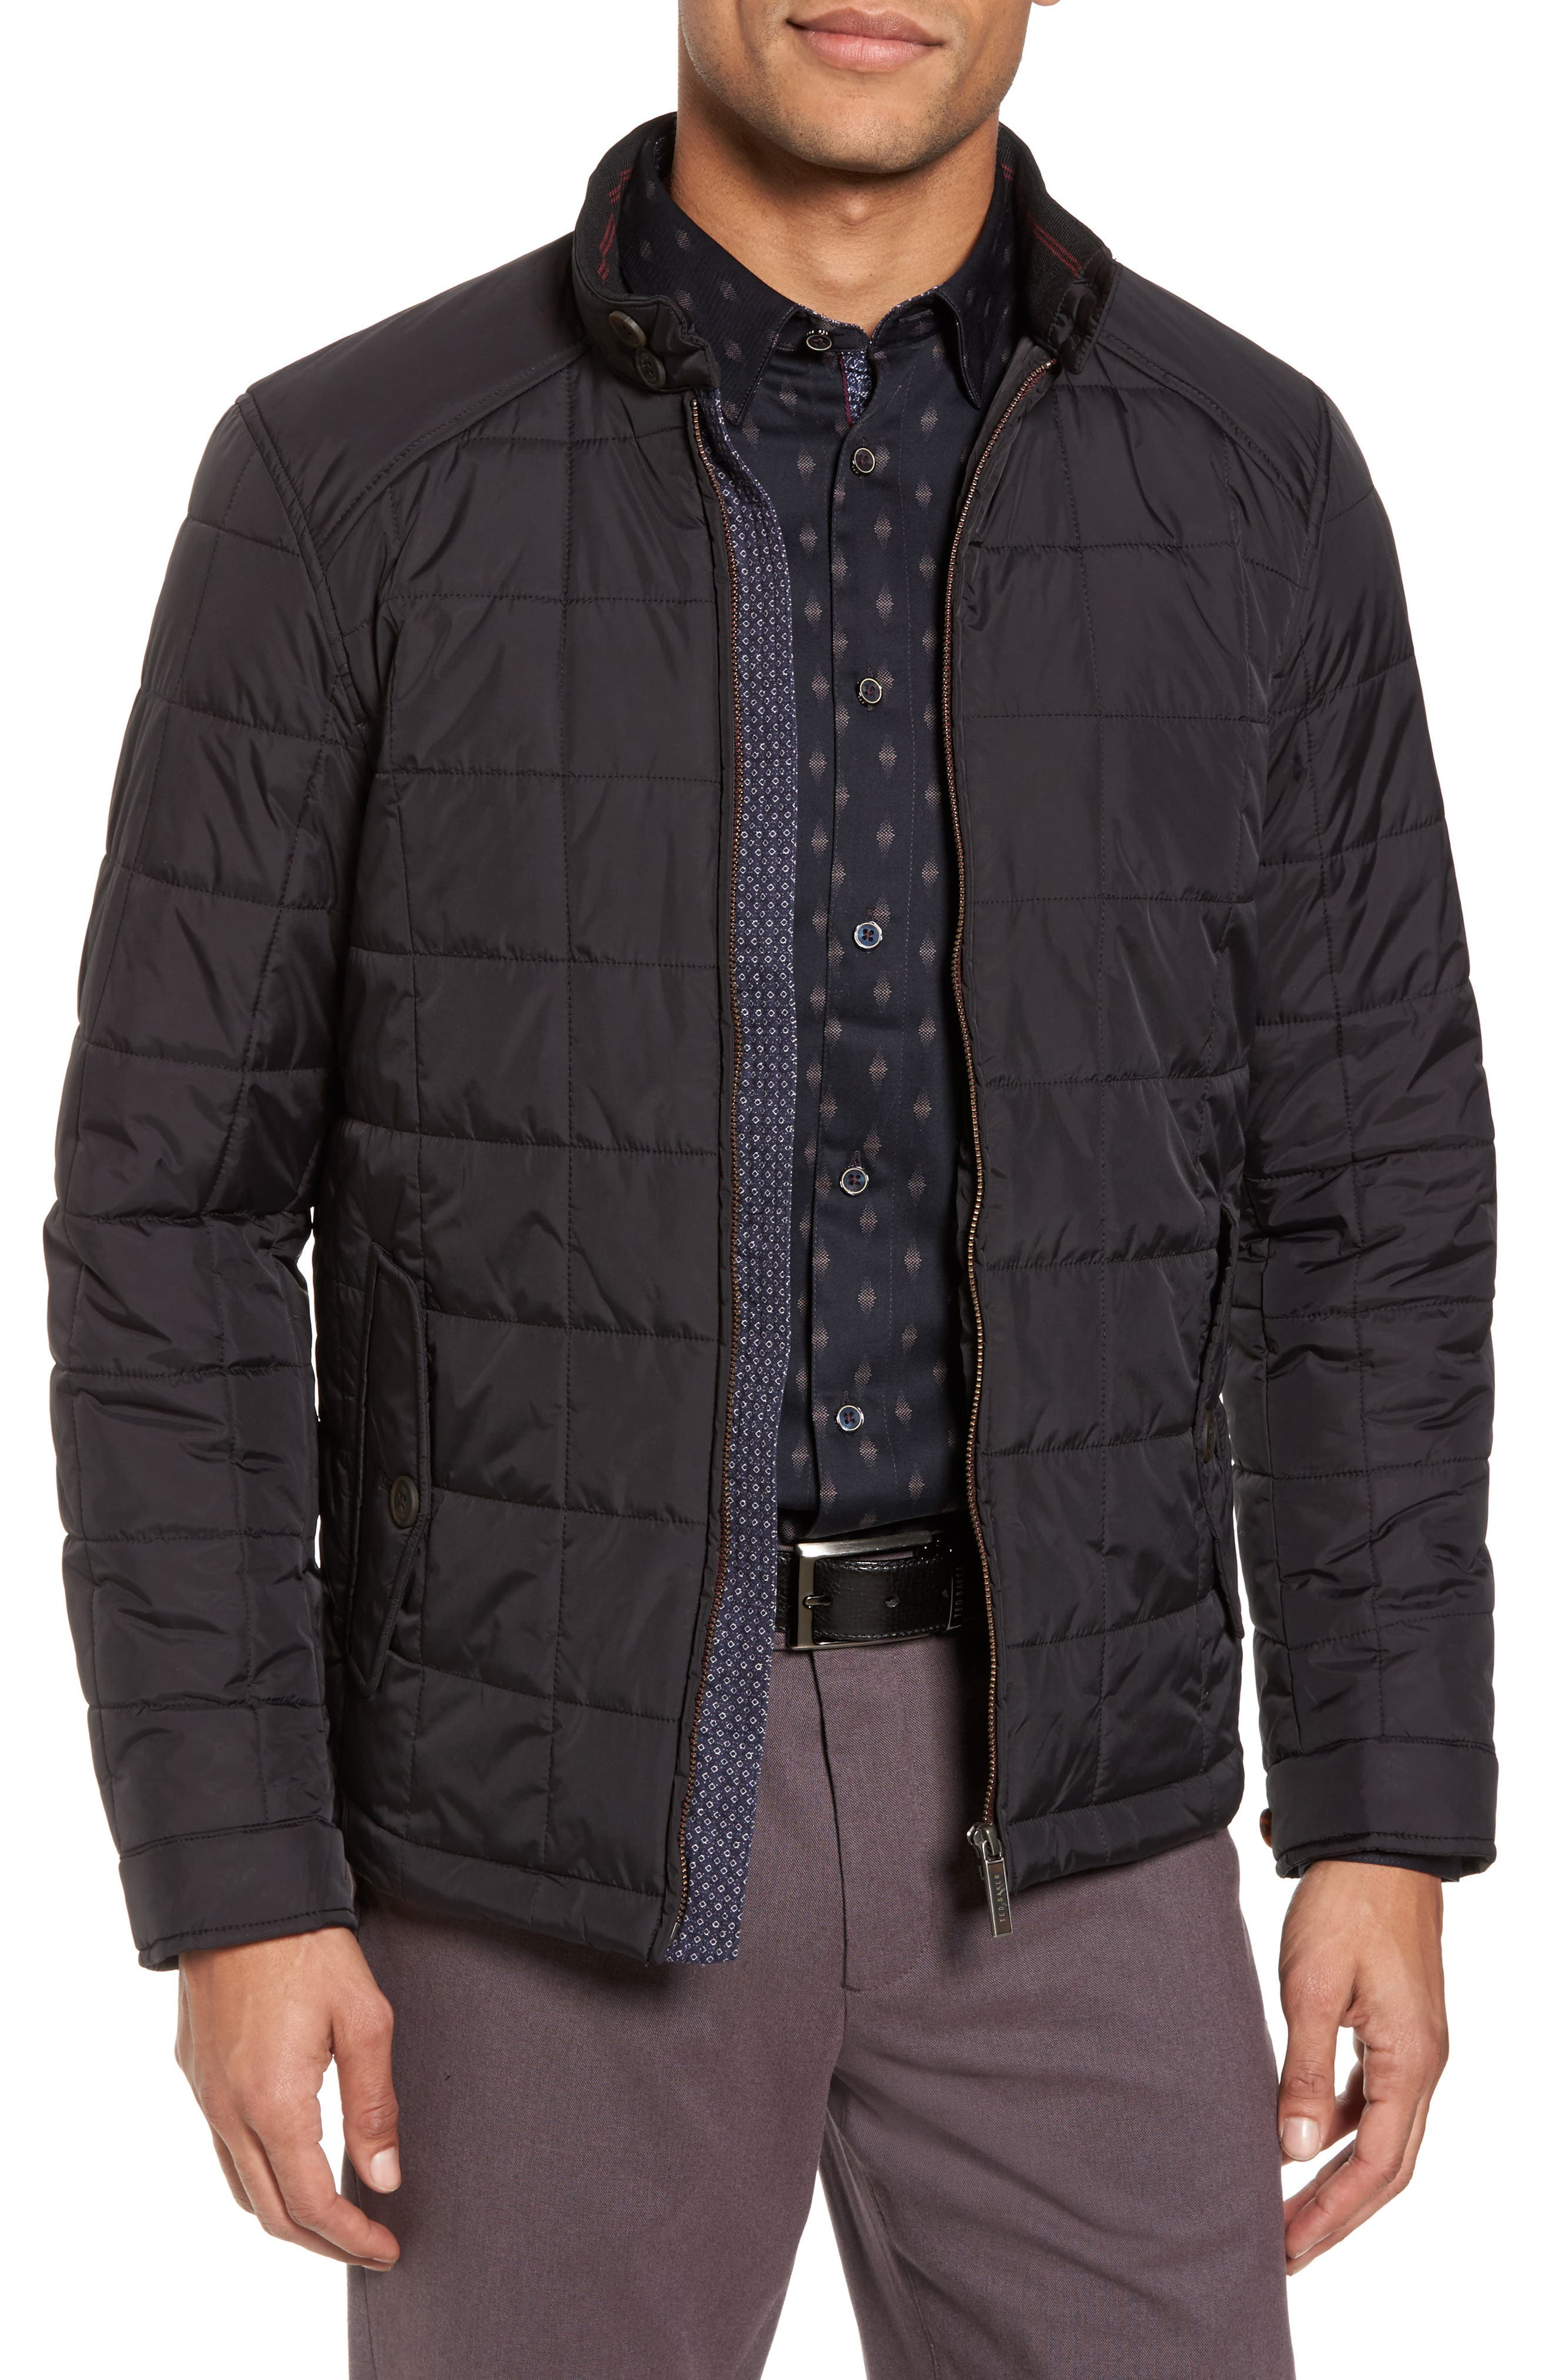 Alees Trim Fit Quilted Jacket,                         Main,                         color, 001